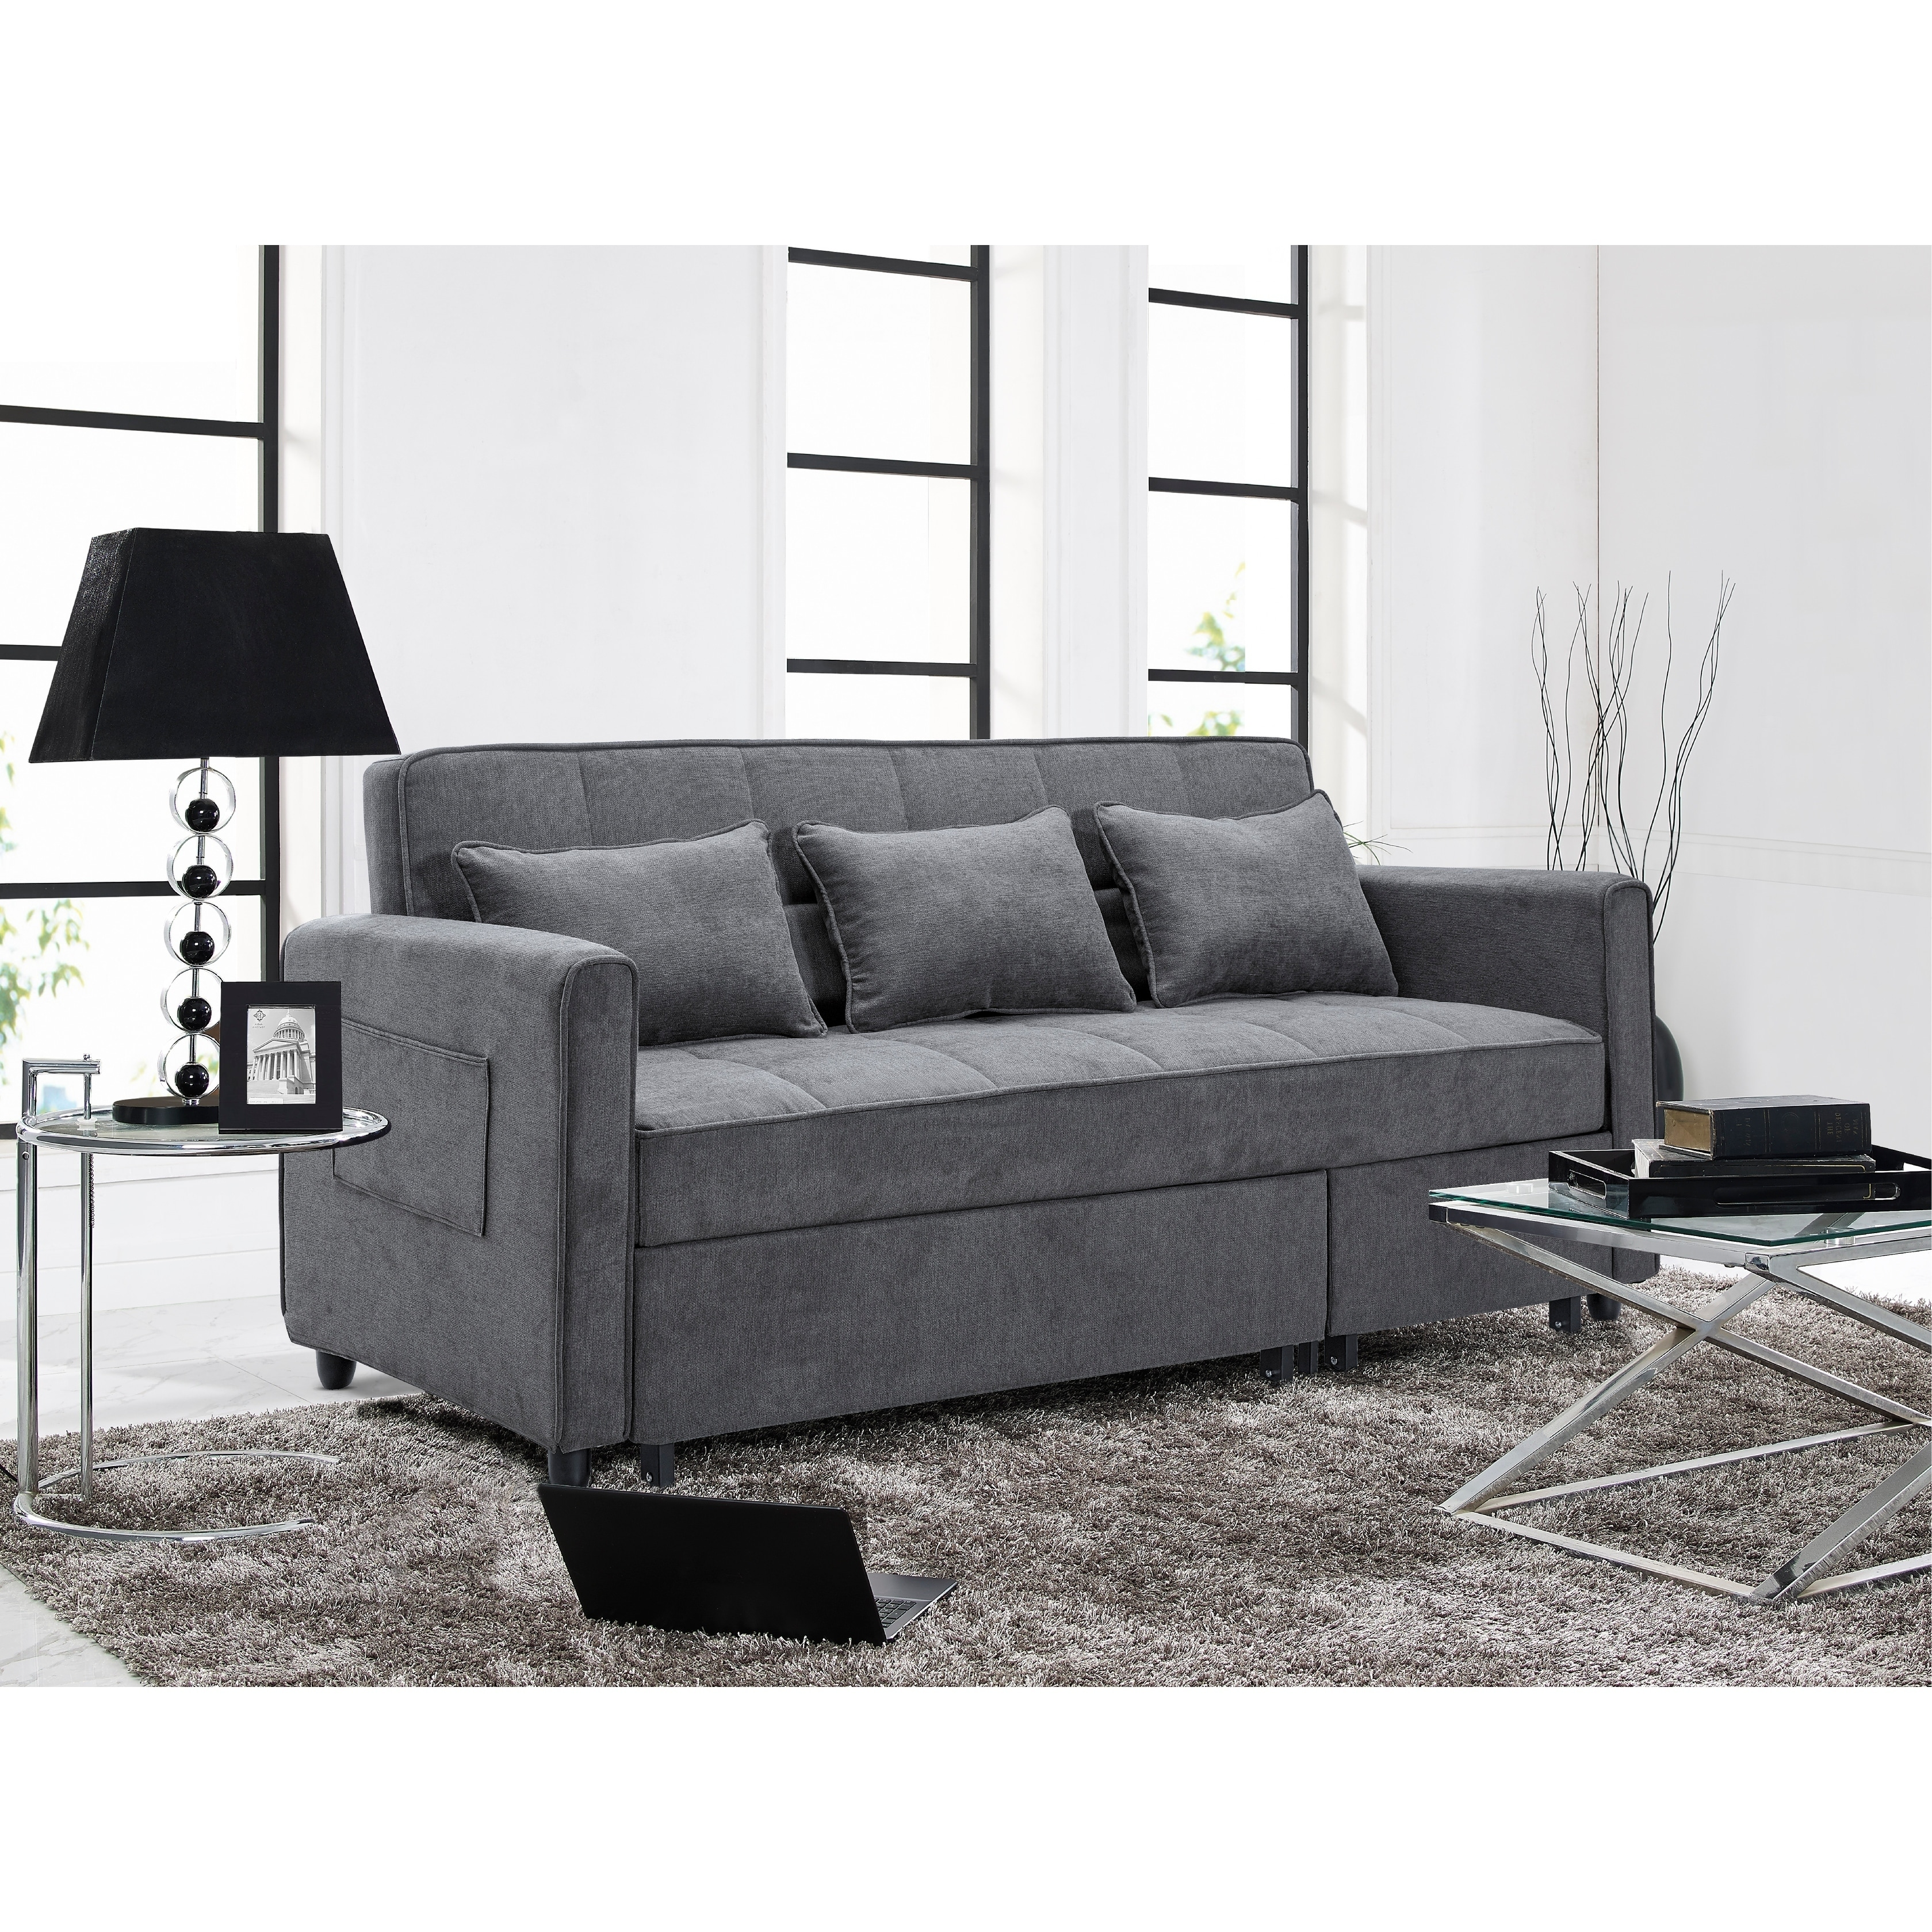 Himolla Relax Sofa 2 5 Sitzer Couch Relax Latest Previous With Couch Relax Modern Dark